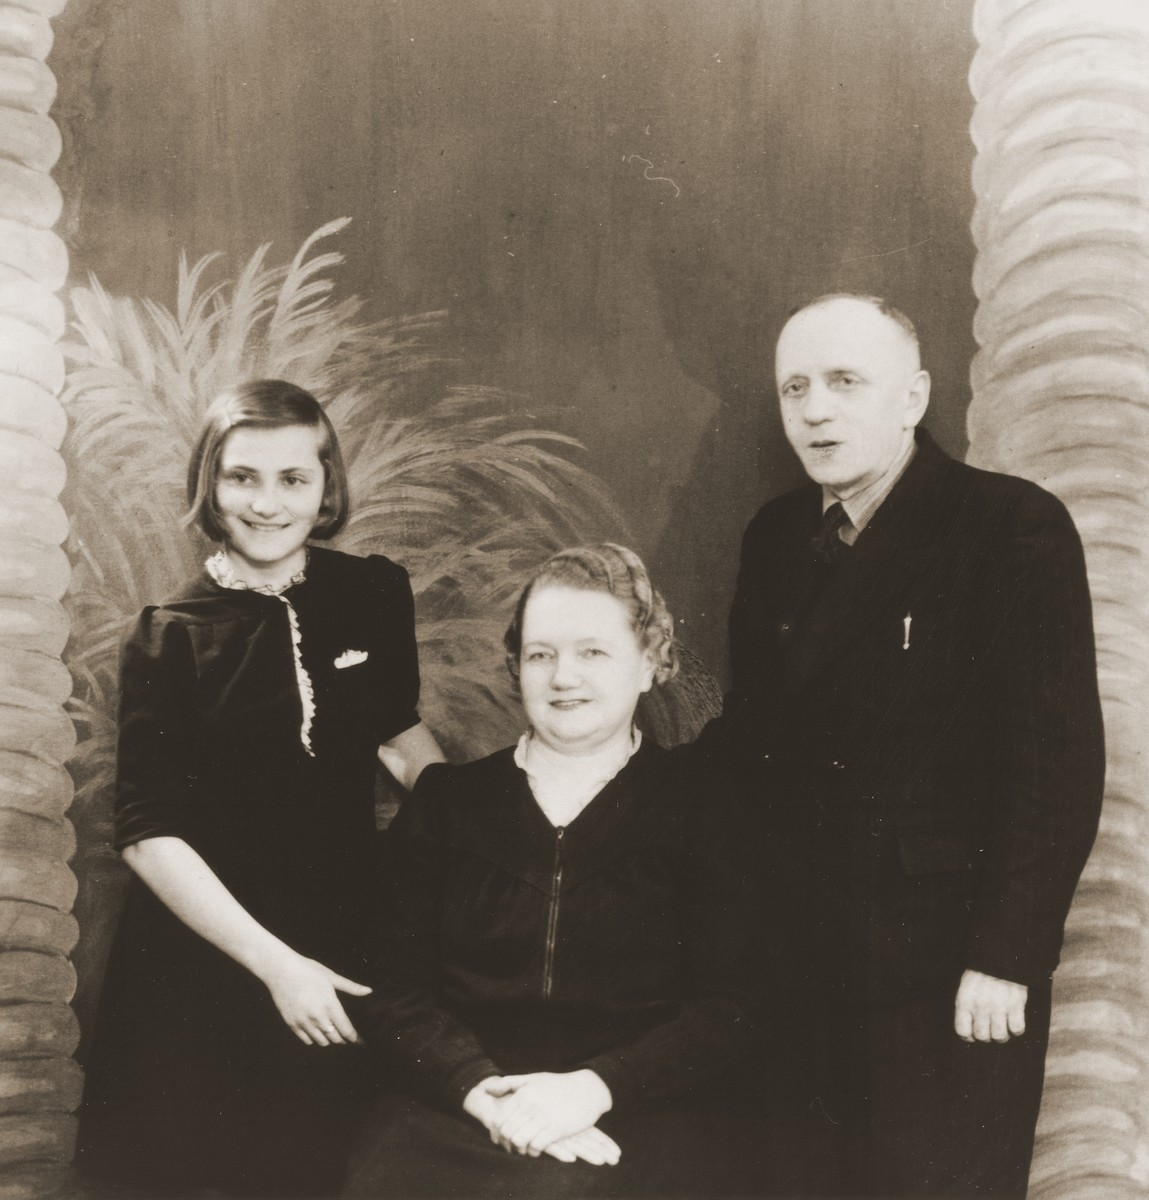 Studio portrait of the Turkin family with their adopted Jewish daughter whom they hid during the war.  Pictured from left to right are Salusia Goldblum, Eva Turkin and Mikolei Turkin.  This photograph was sent by the Turkins to Salusia's relatives in Canada.